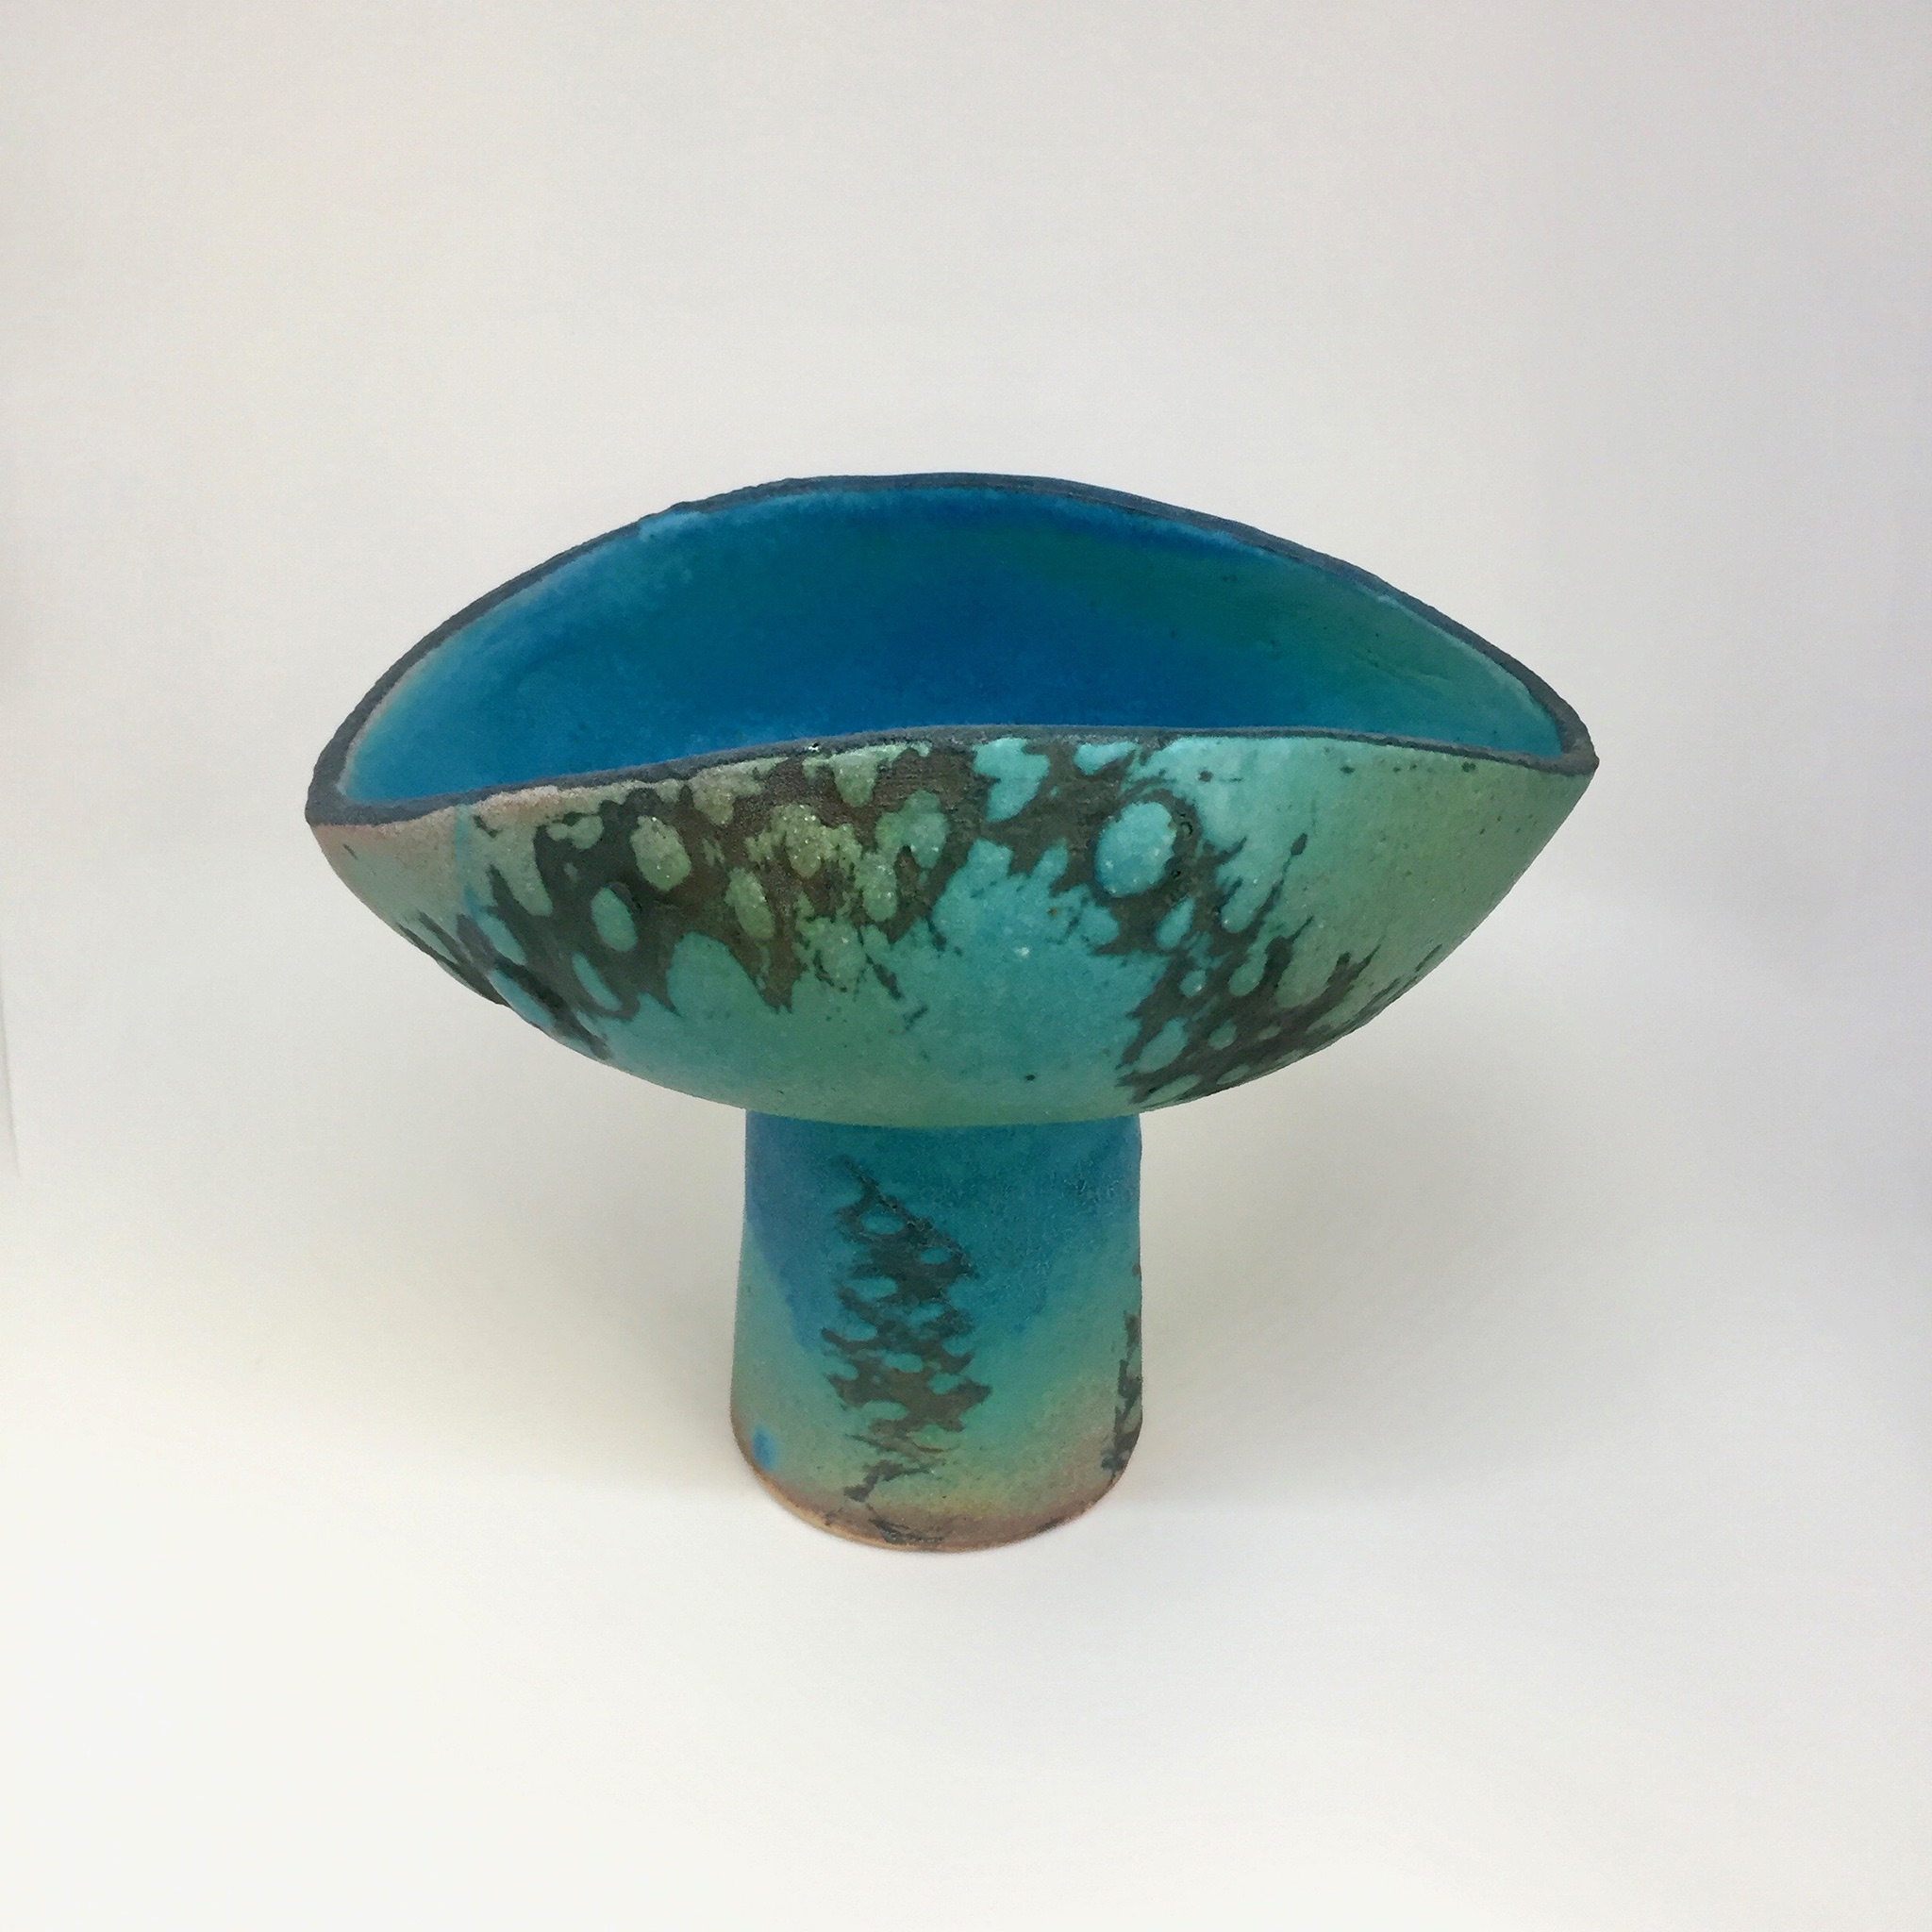 Ceramics Exhibition at Flow Modern - Saturday, November 11, 2017 - Friday, December 15th, 20175:00pm - 8:00pmFlow Modern, 768 N. Palm Canyon Dr. Palm Springs, CA 92262http://www.flowmodern.com